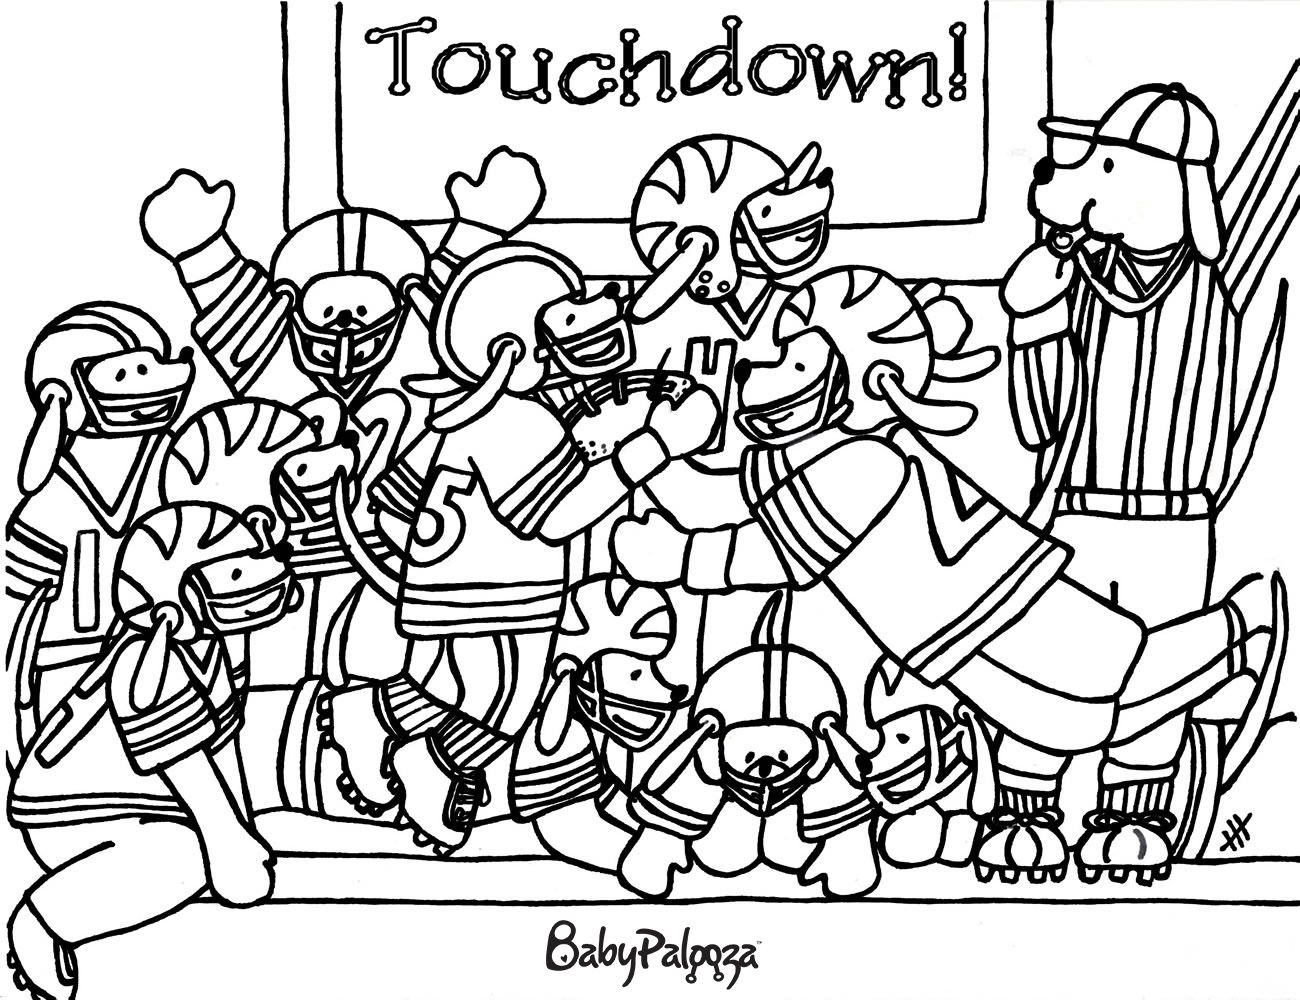 Puppy Bowl Coloring Page For The Kids To Color During Your